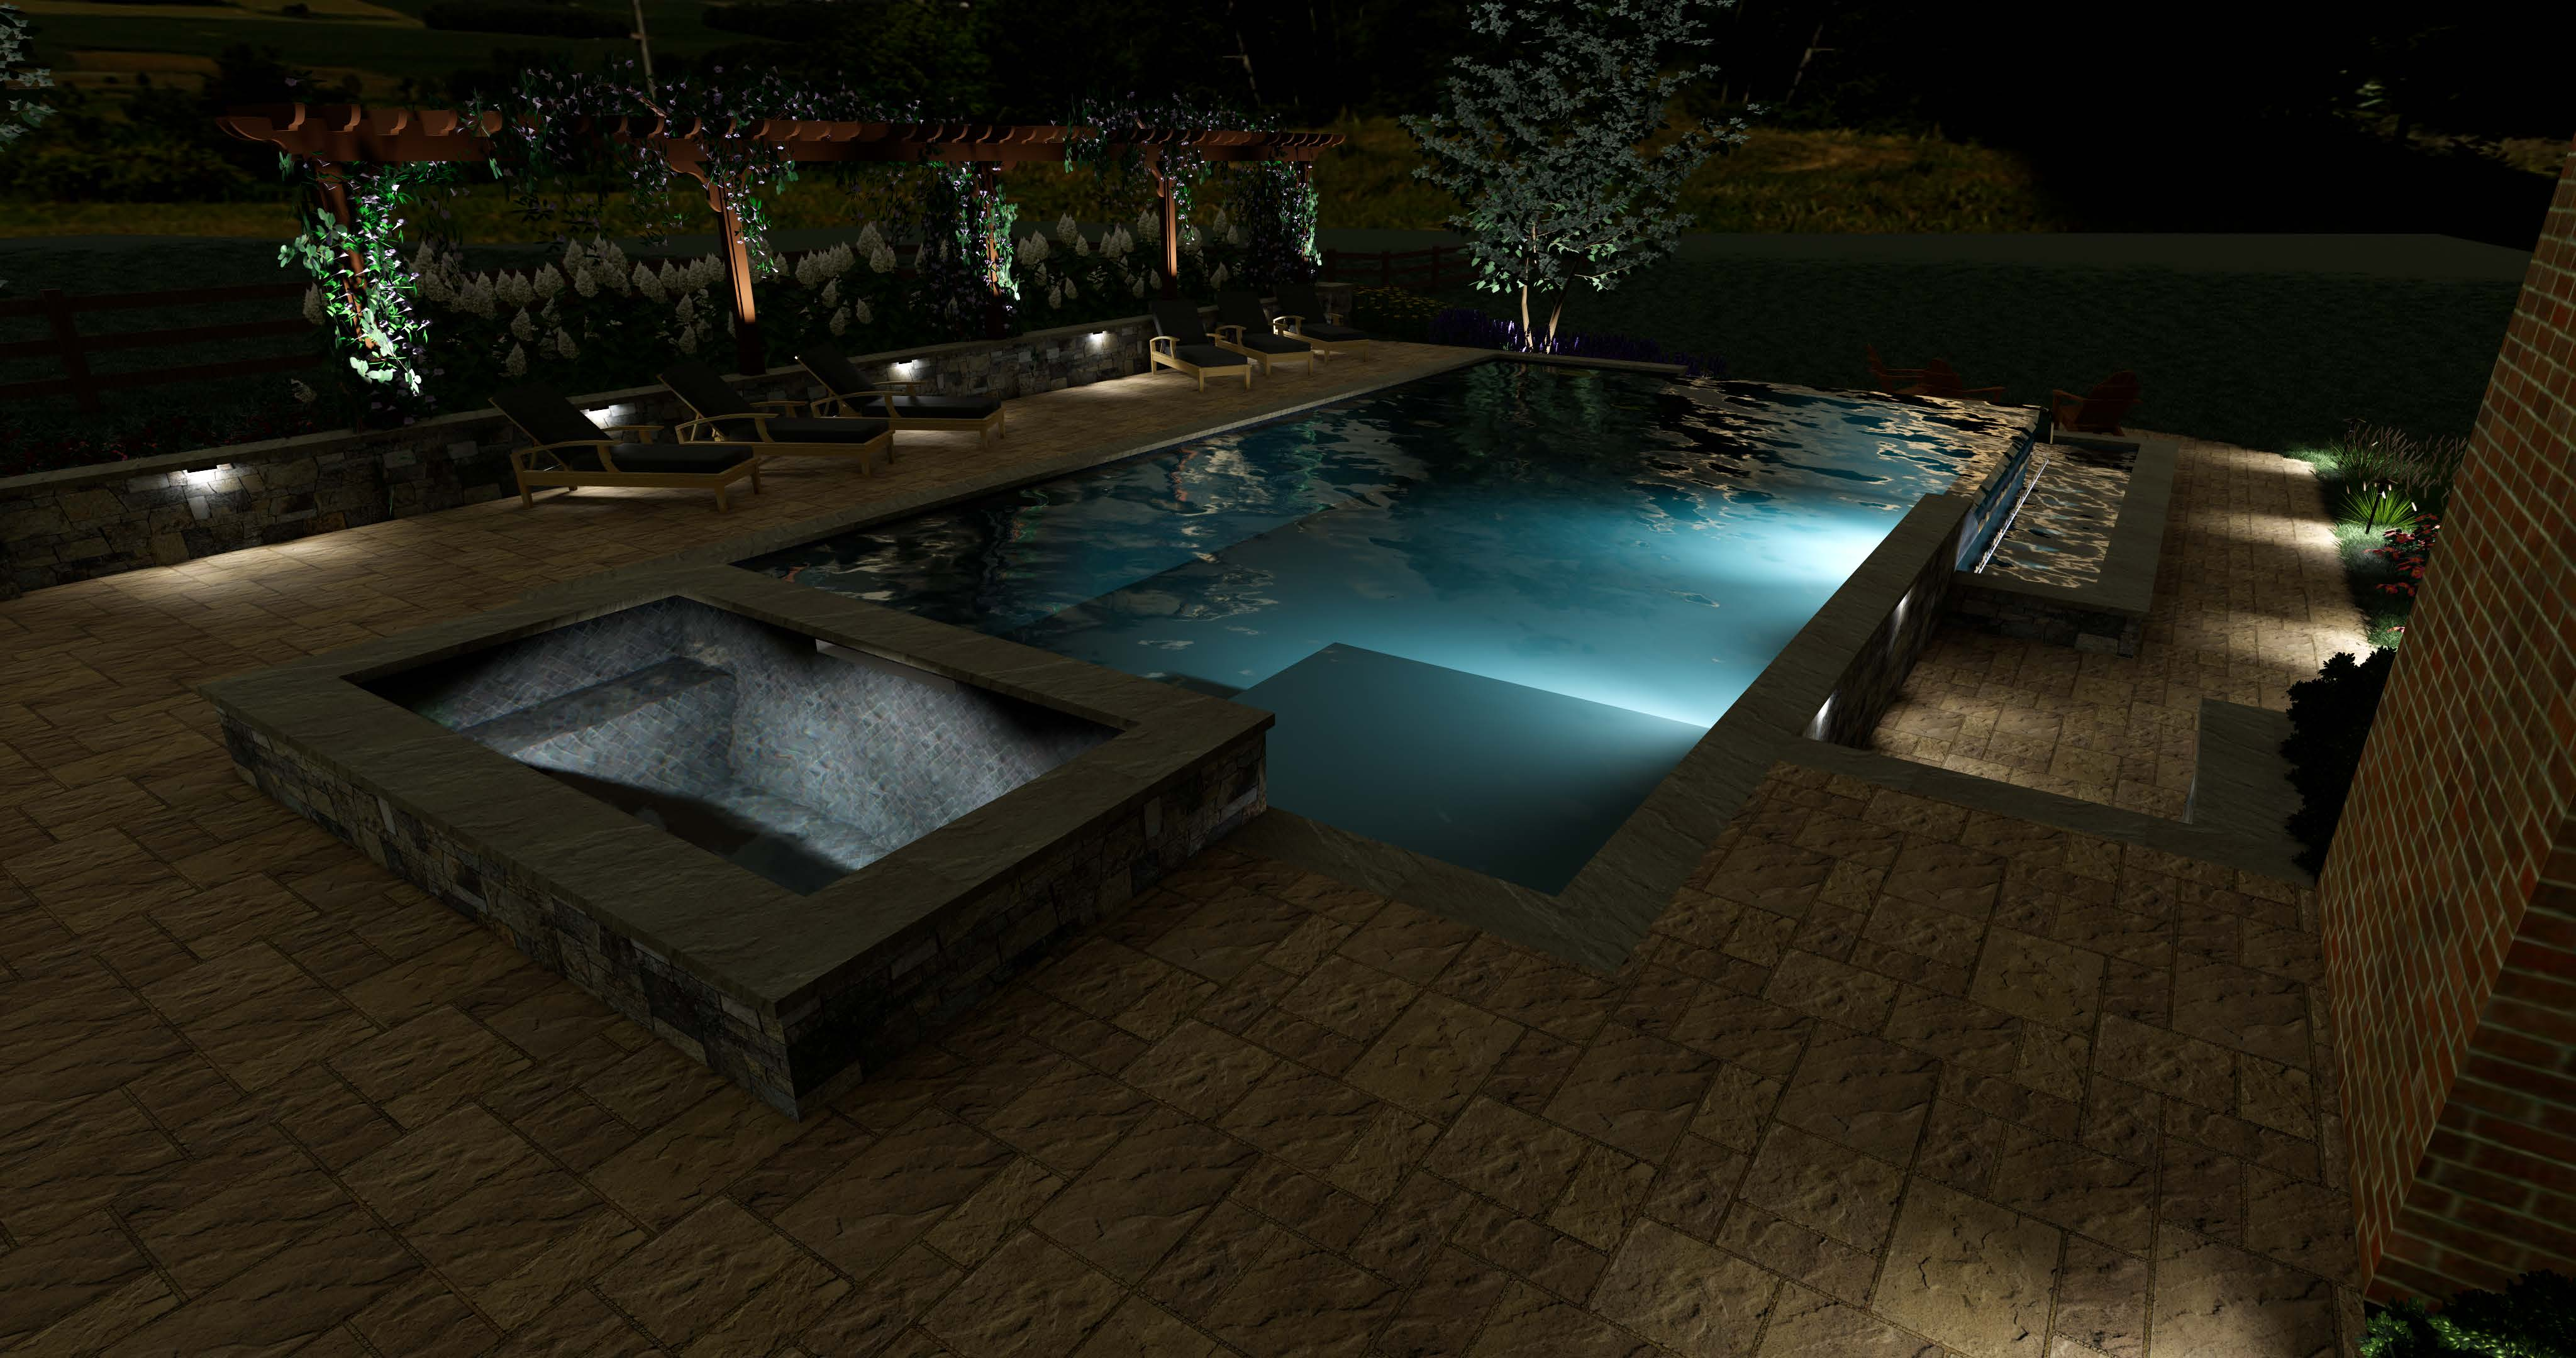 3D Pool Design: Why it's Essential for Ashburn, Aldie, & Leesburg, VA Property Transformations